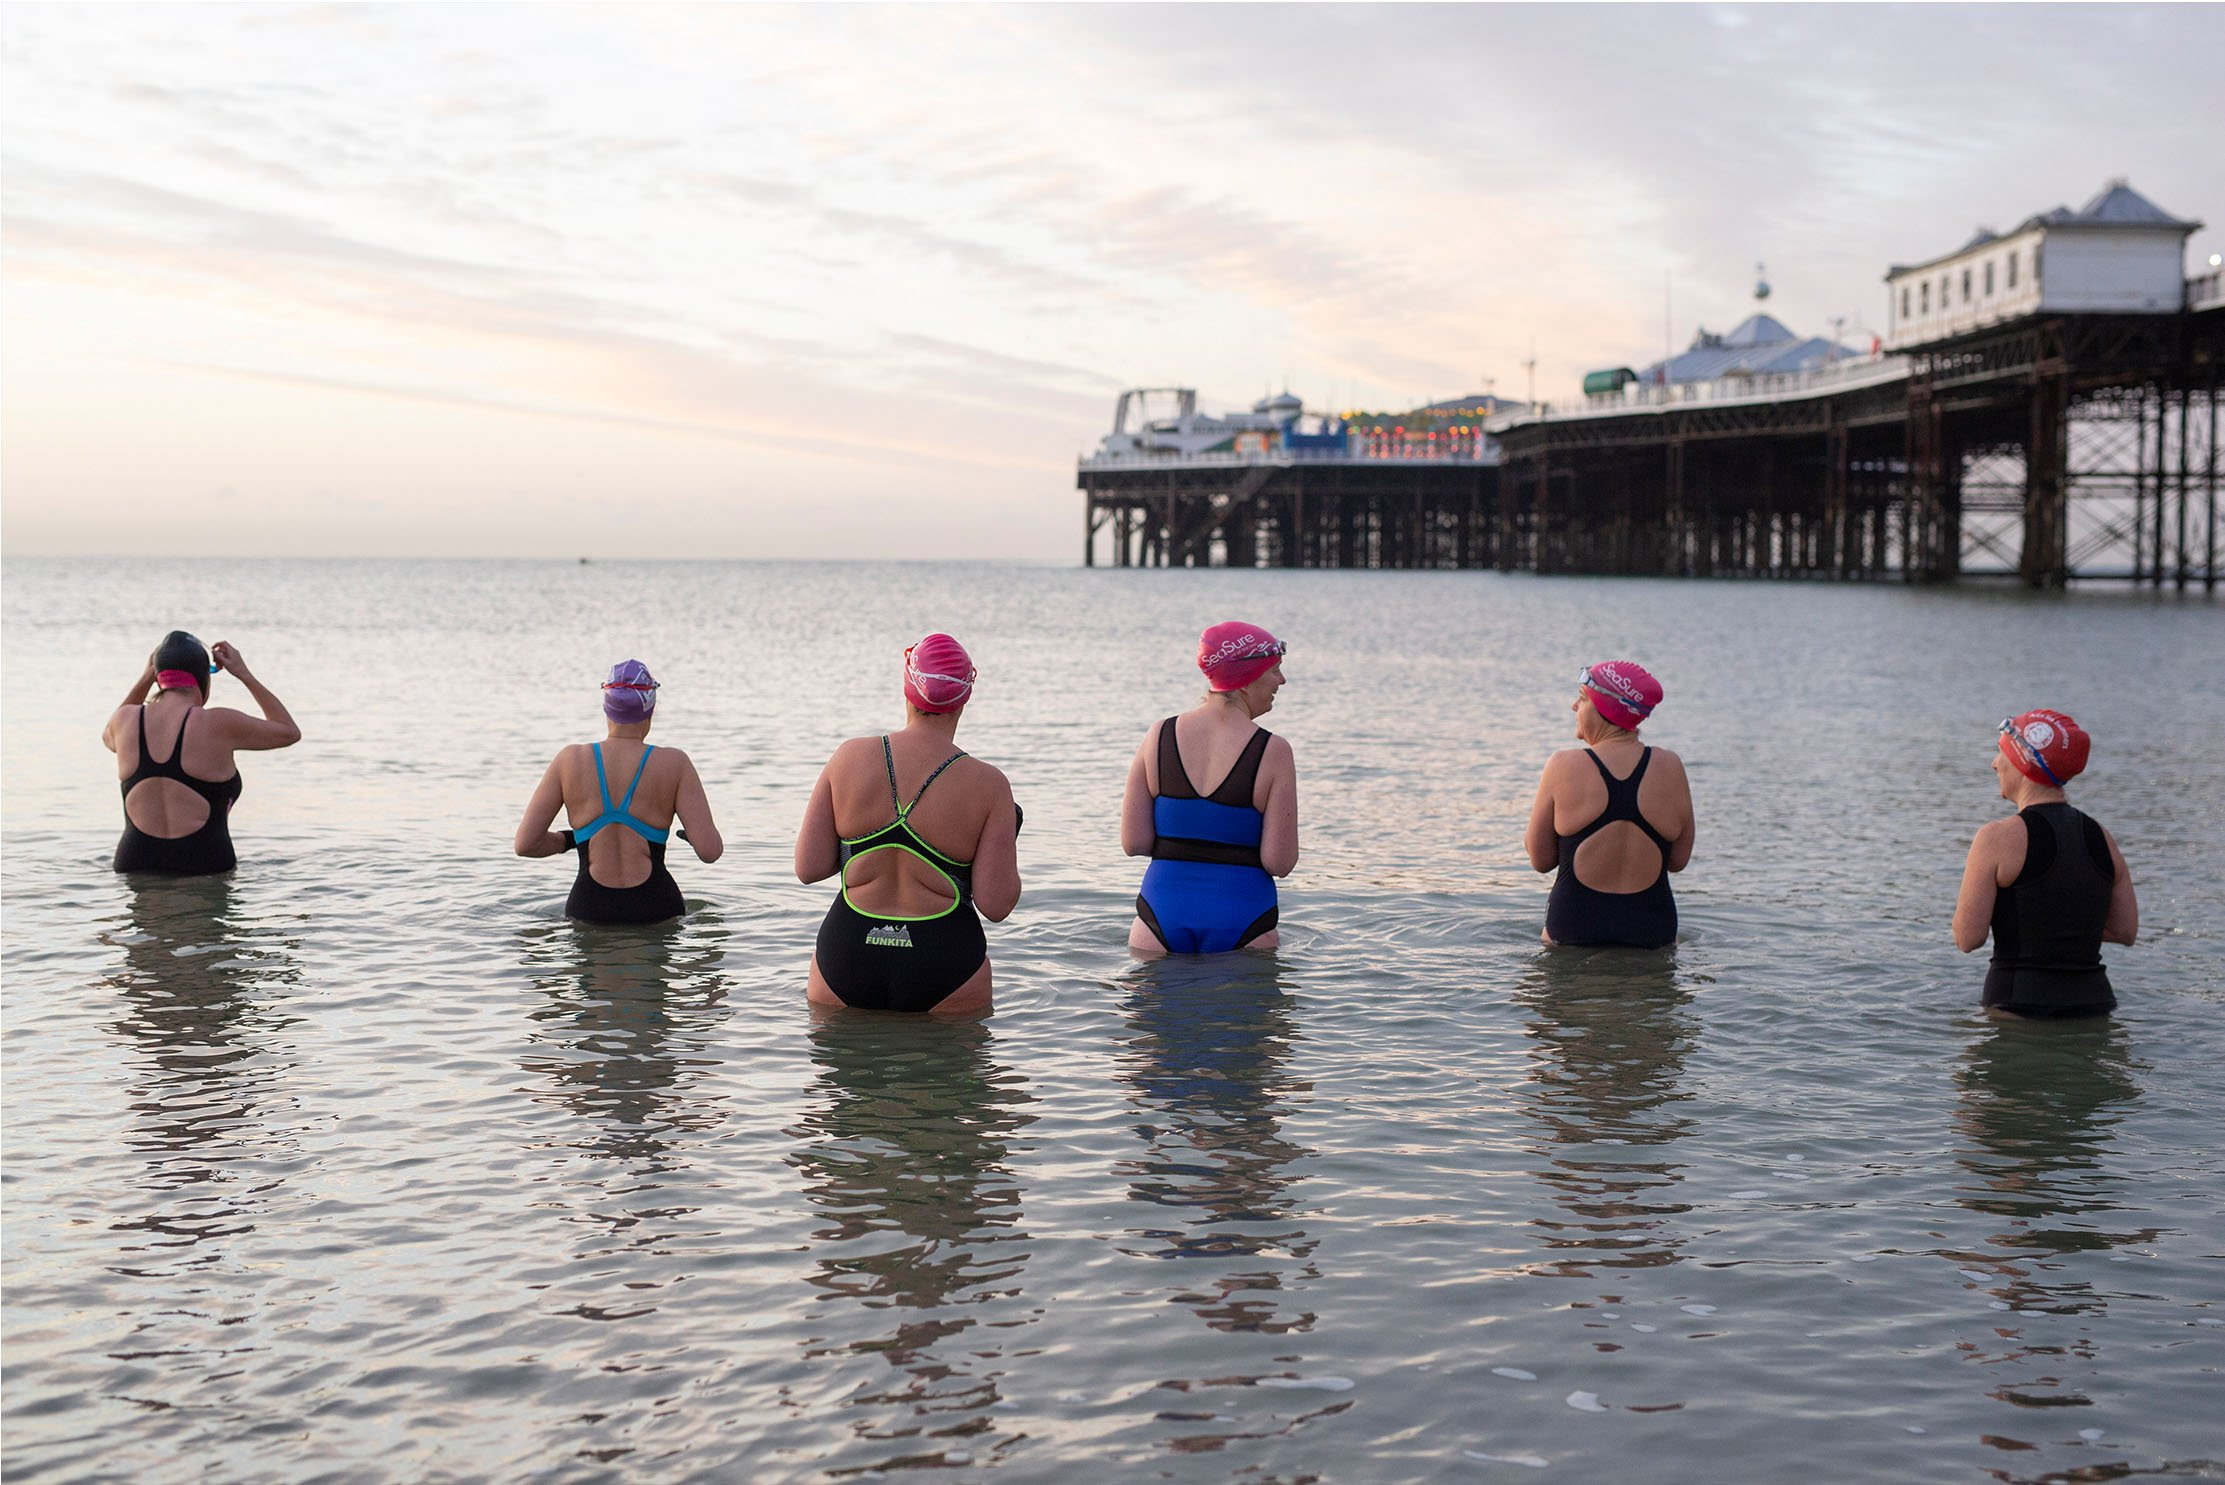 A Winters Swim Jonathan Browning brings new exhibition charting the increase in sea swimming during pandemic, runs at Worthing's The Seafront Galley until Oct 2021